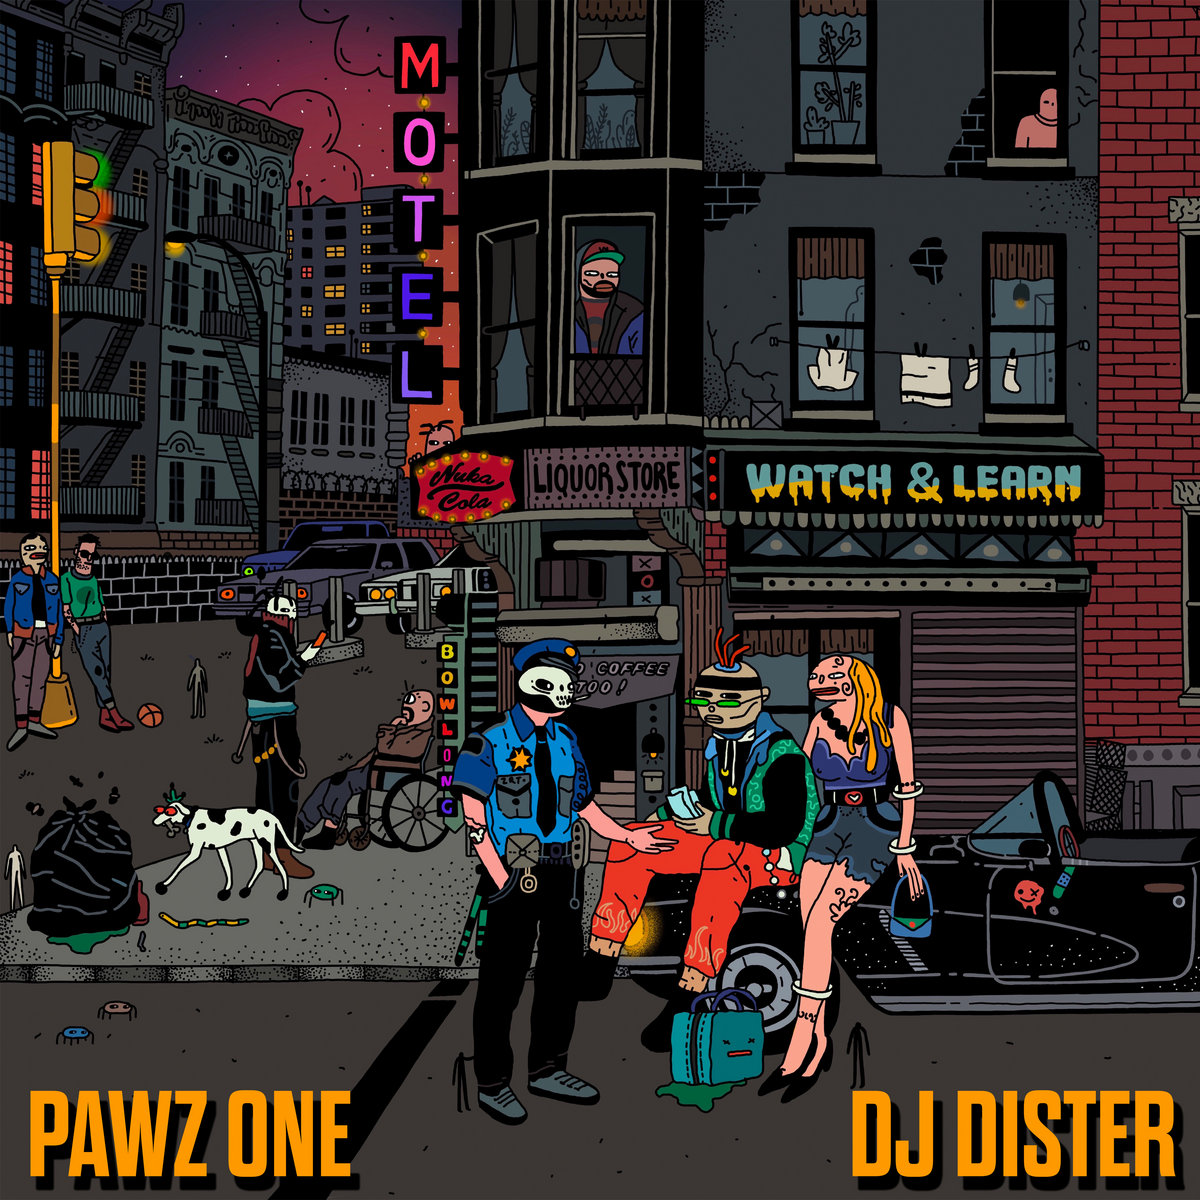 Watch___learn_pawz_one_dj_dister